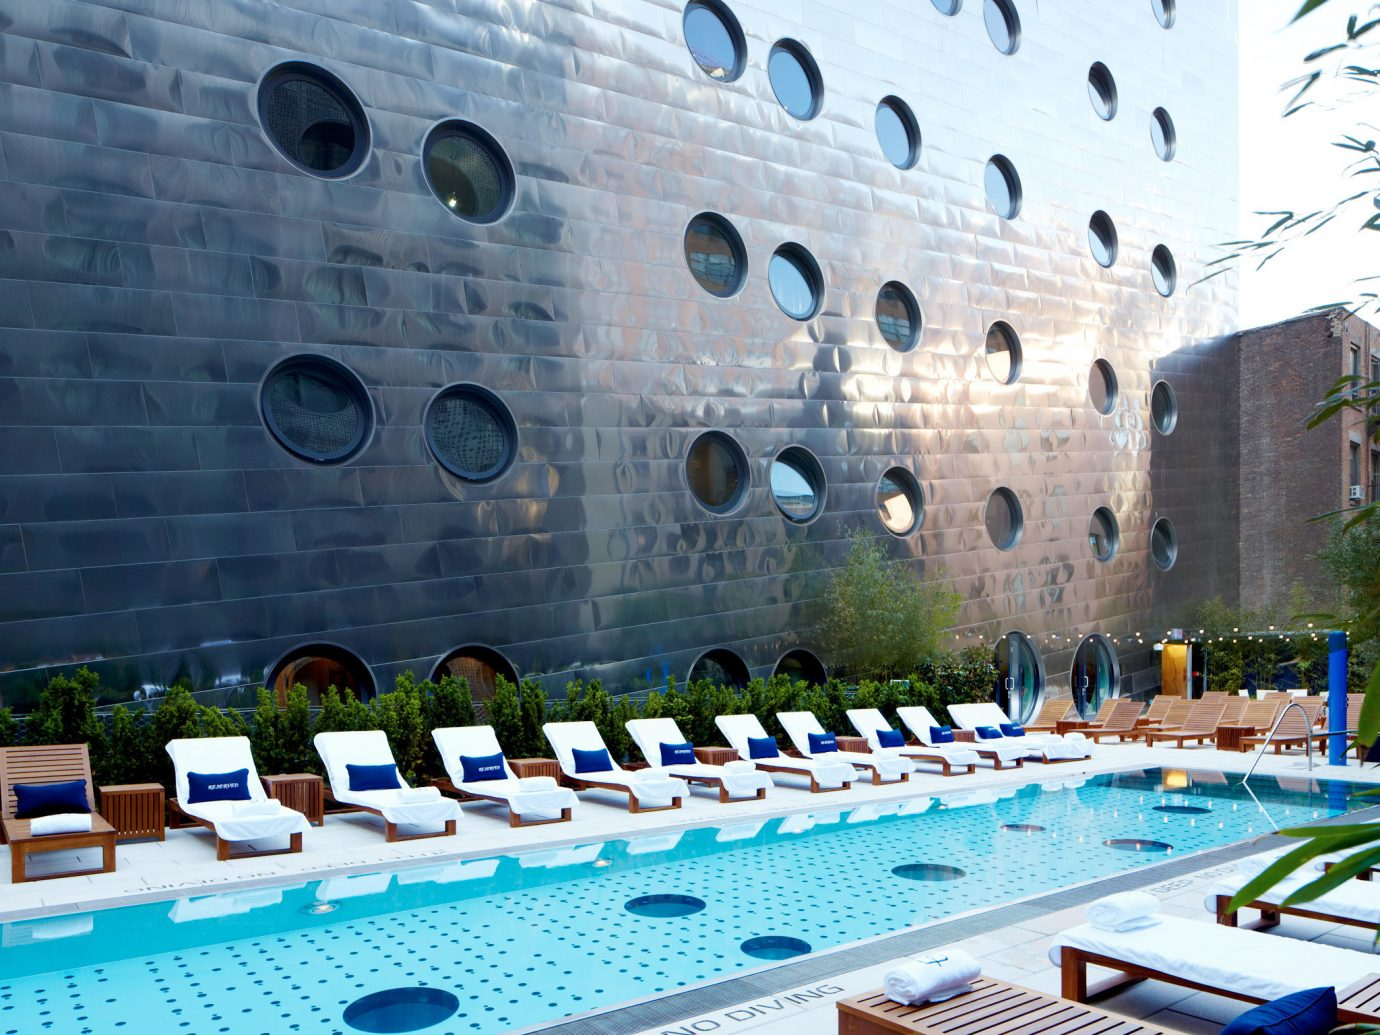 Design Hip Modern Offbeat Patio Pool Rooftop leisure swimming pool convention center Resort